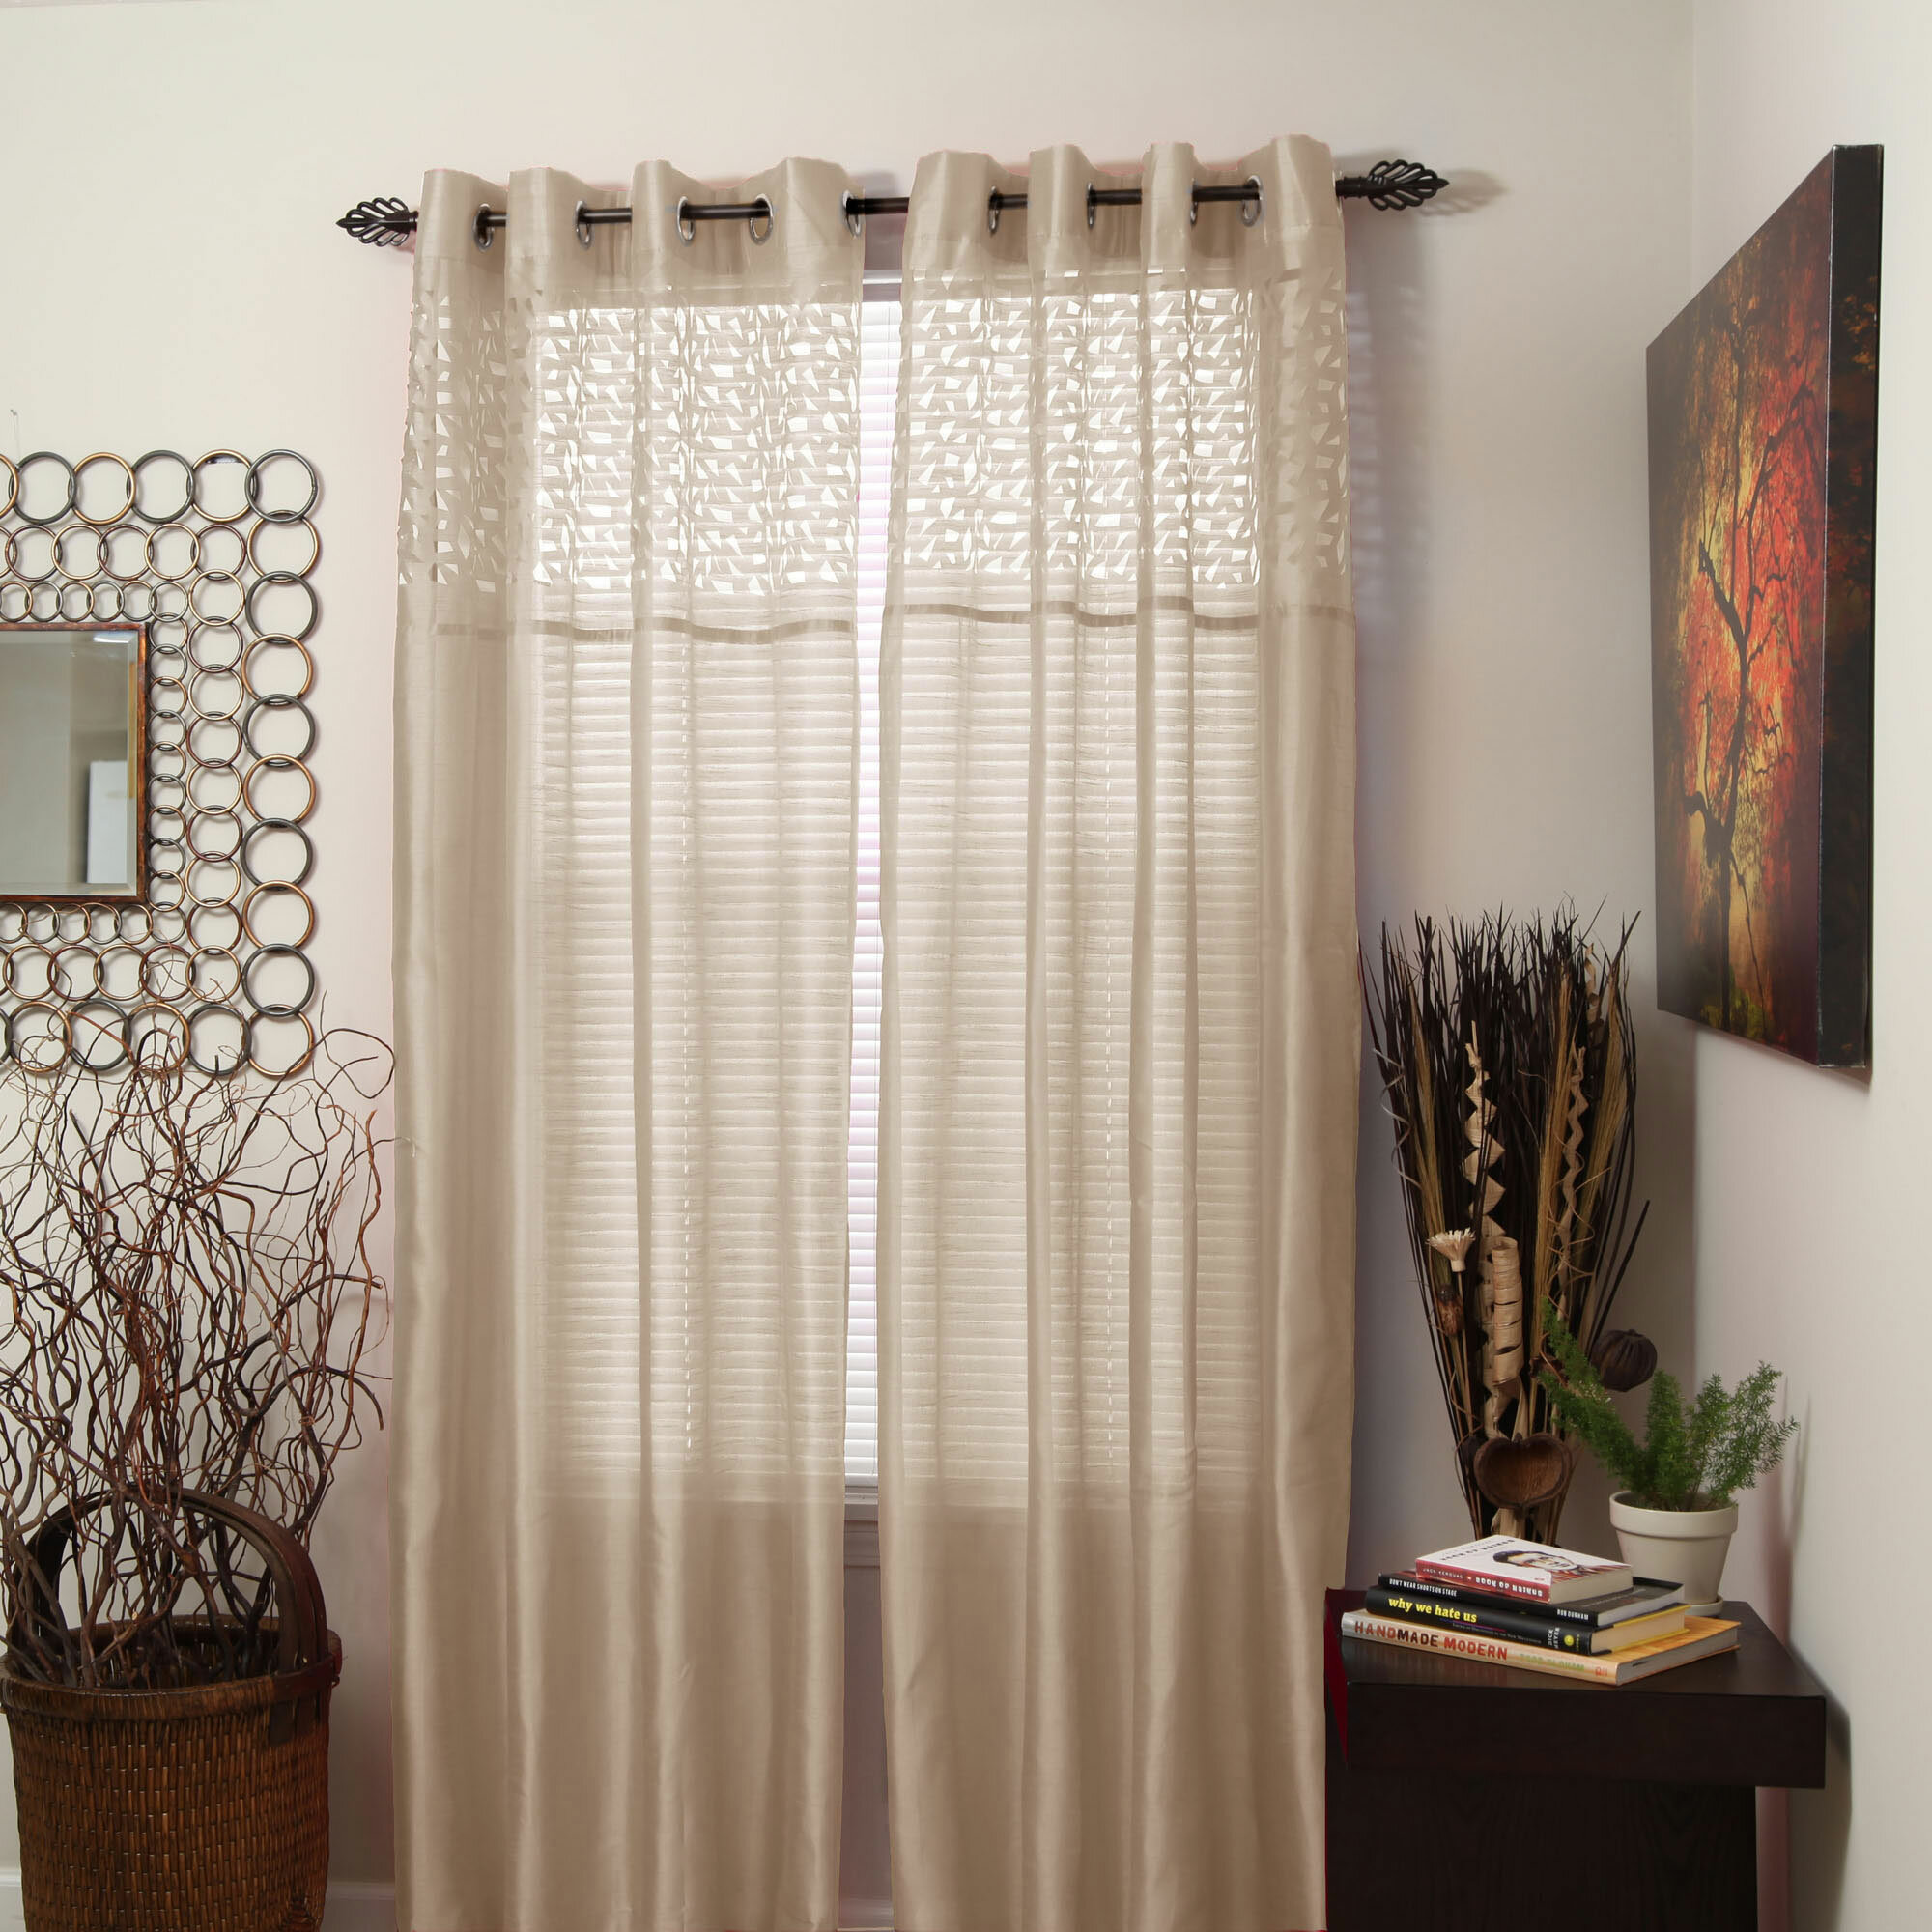 deals home quotations grommet best white curtains get cheap sheer crushed find antique voile fashion on tu bronze top shopping guides